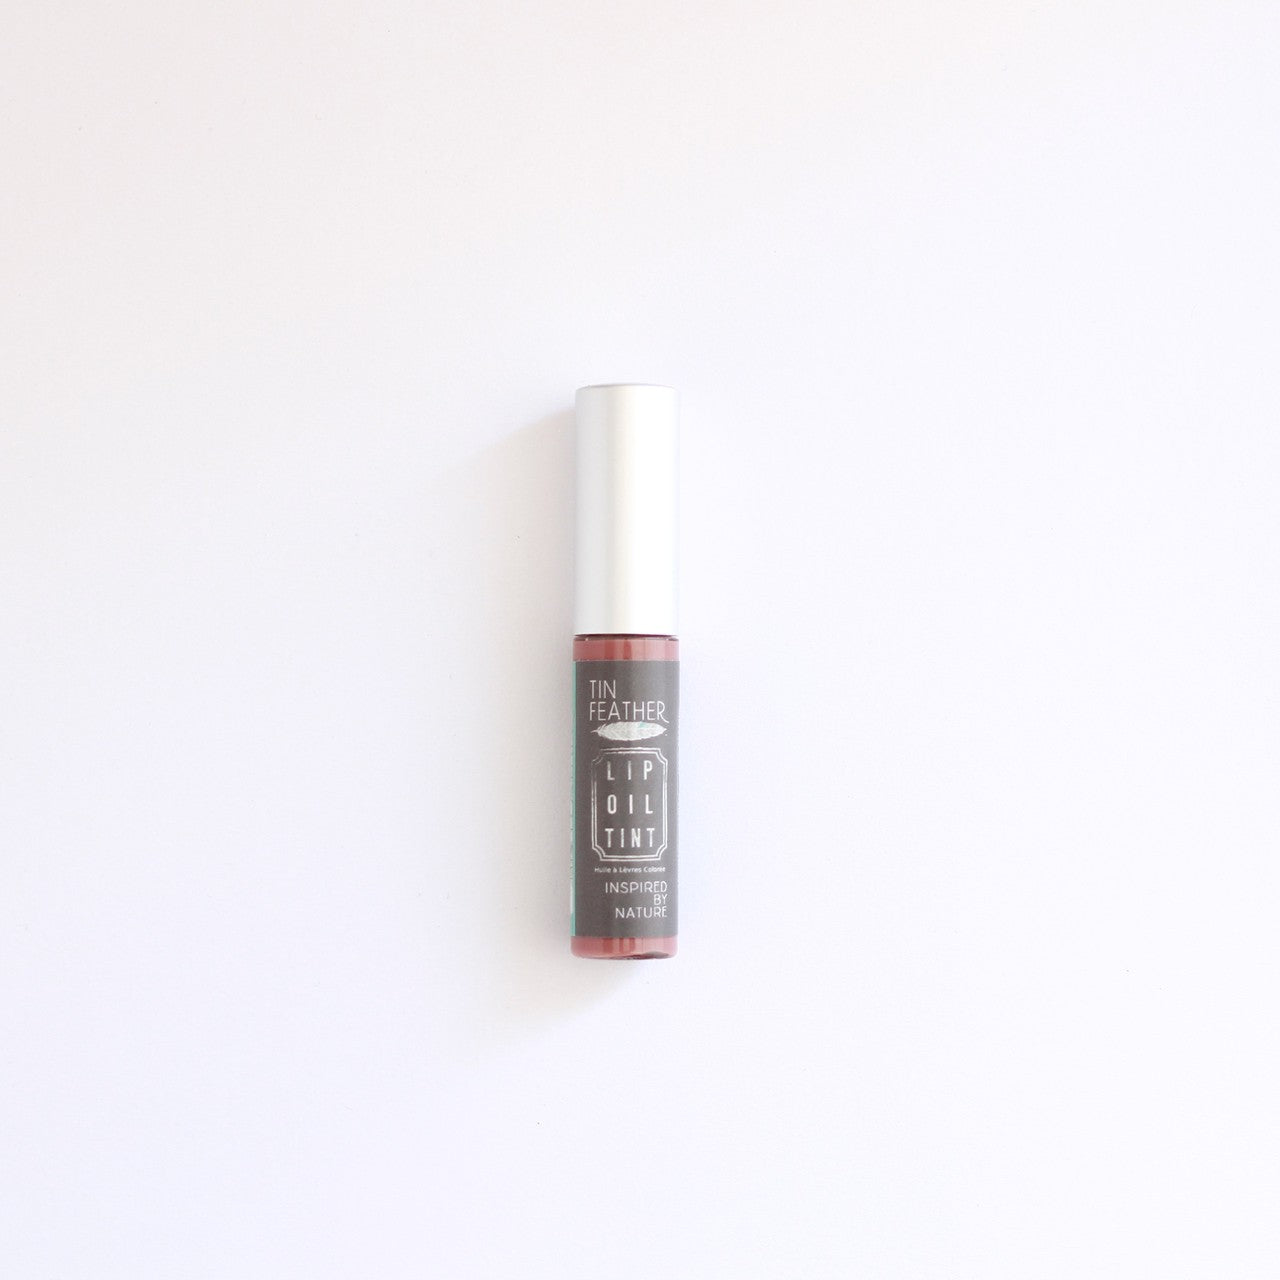 Tin Feather Lip Oil Tint - Refuge